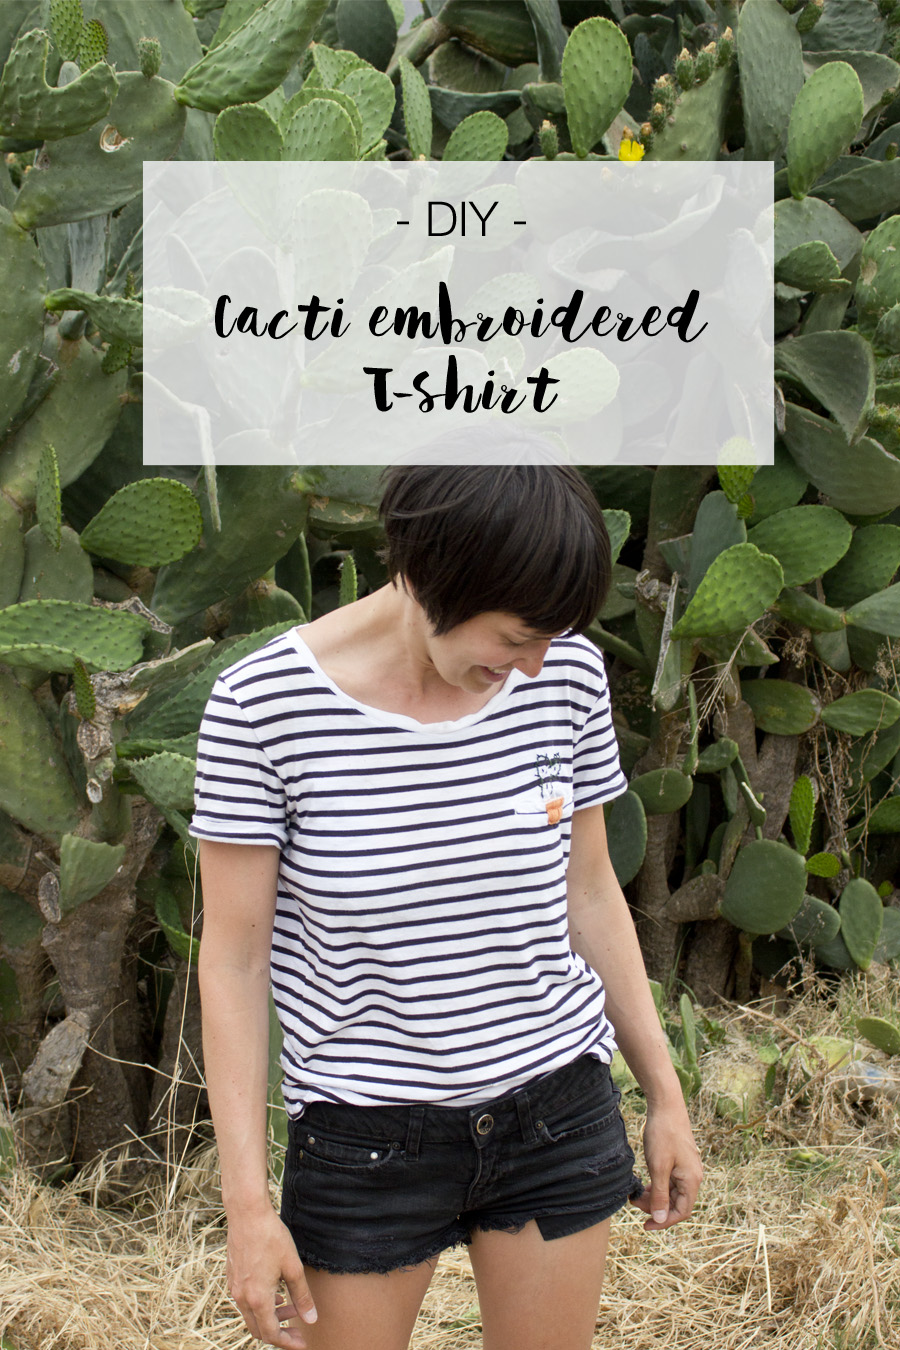 DIY cactus embroidered T-shirt | LOOK WHAT I MADE ...